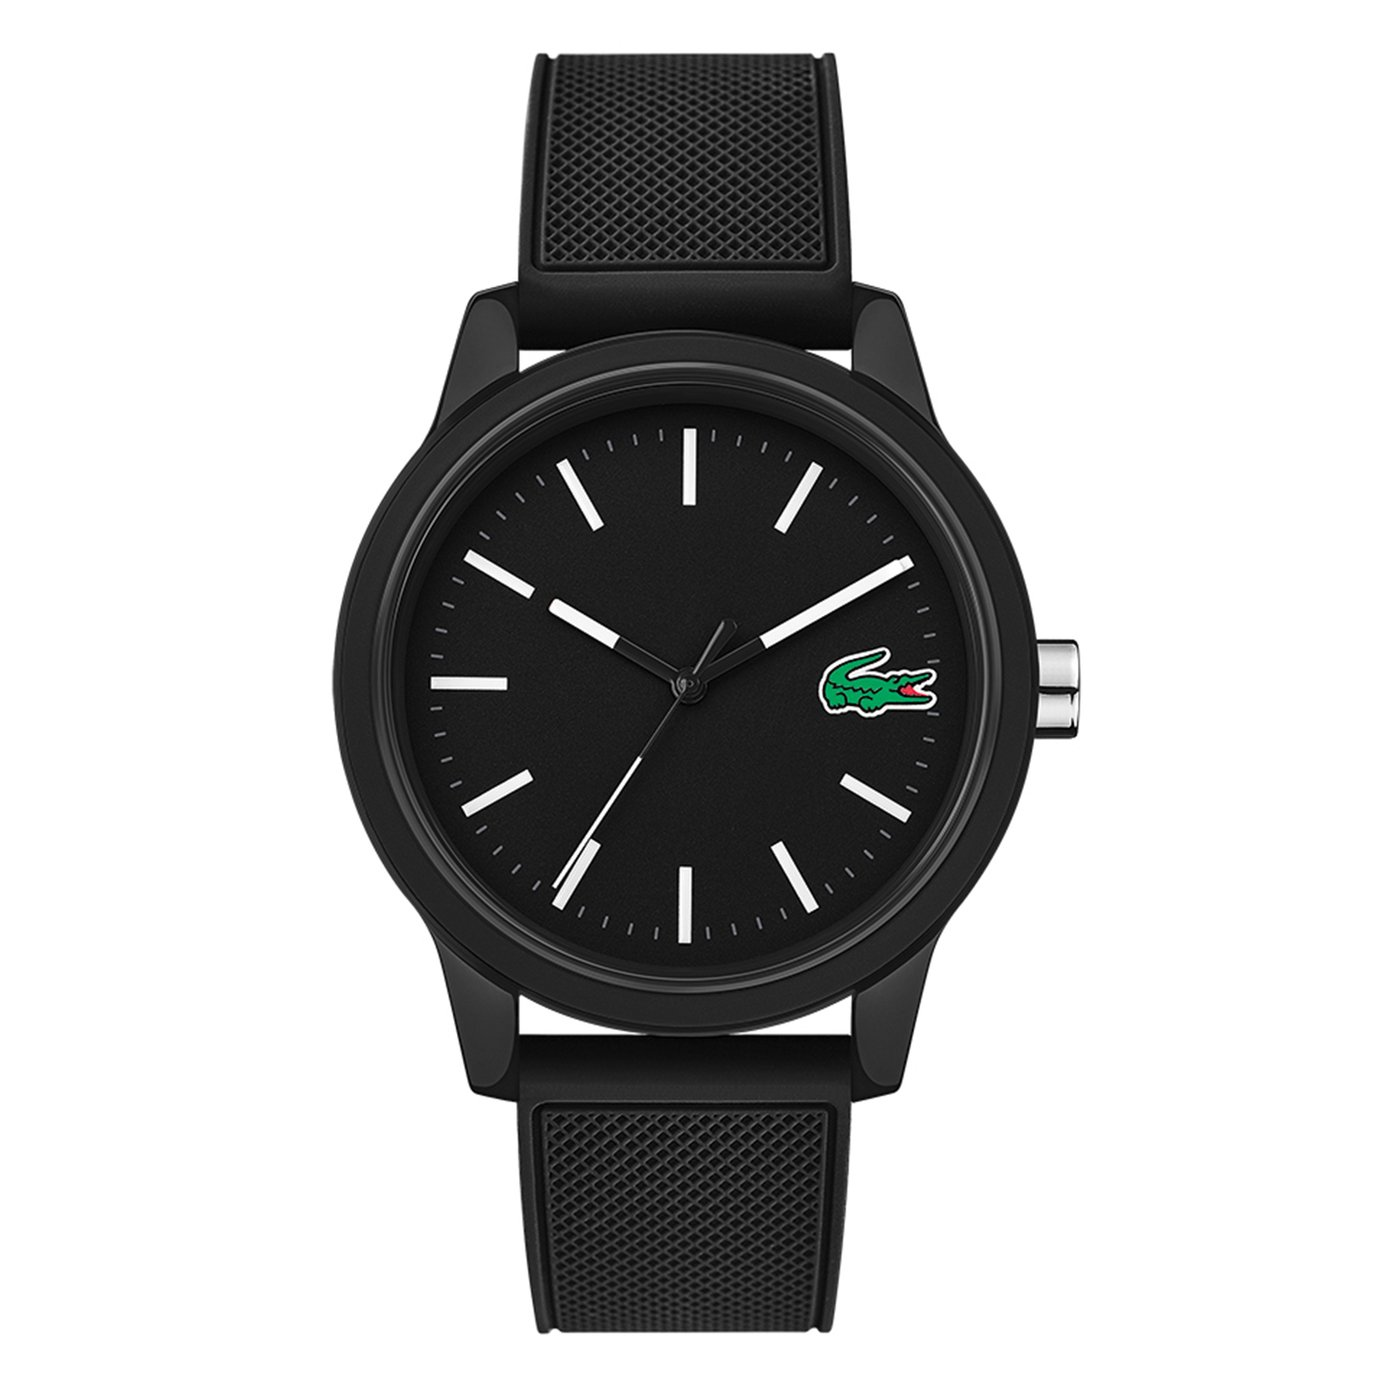 Lacoste Men's 12.12 Black Strap Watch from Lacoste